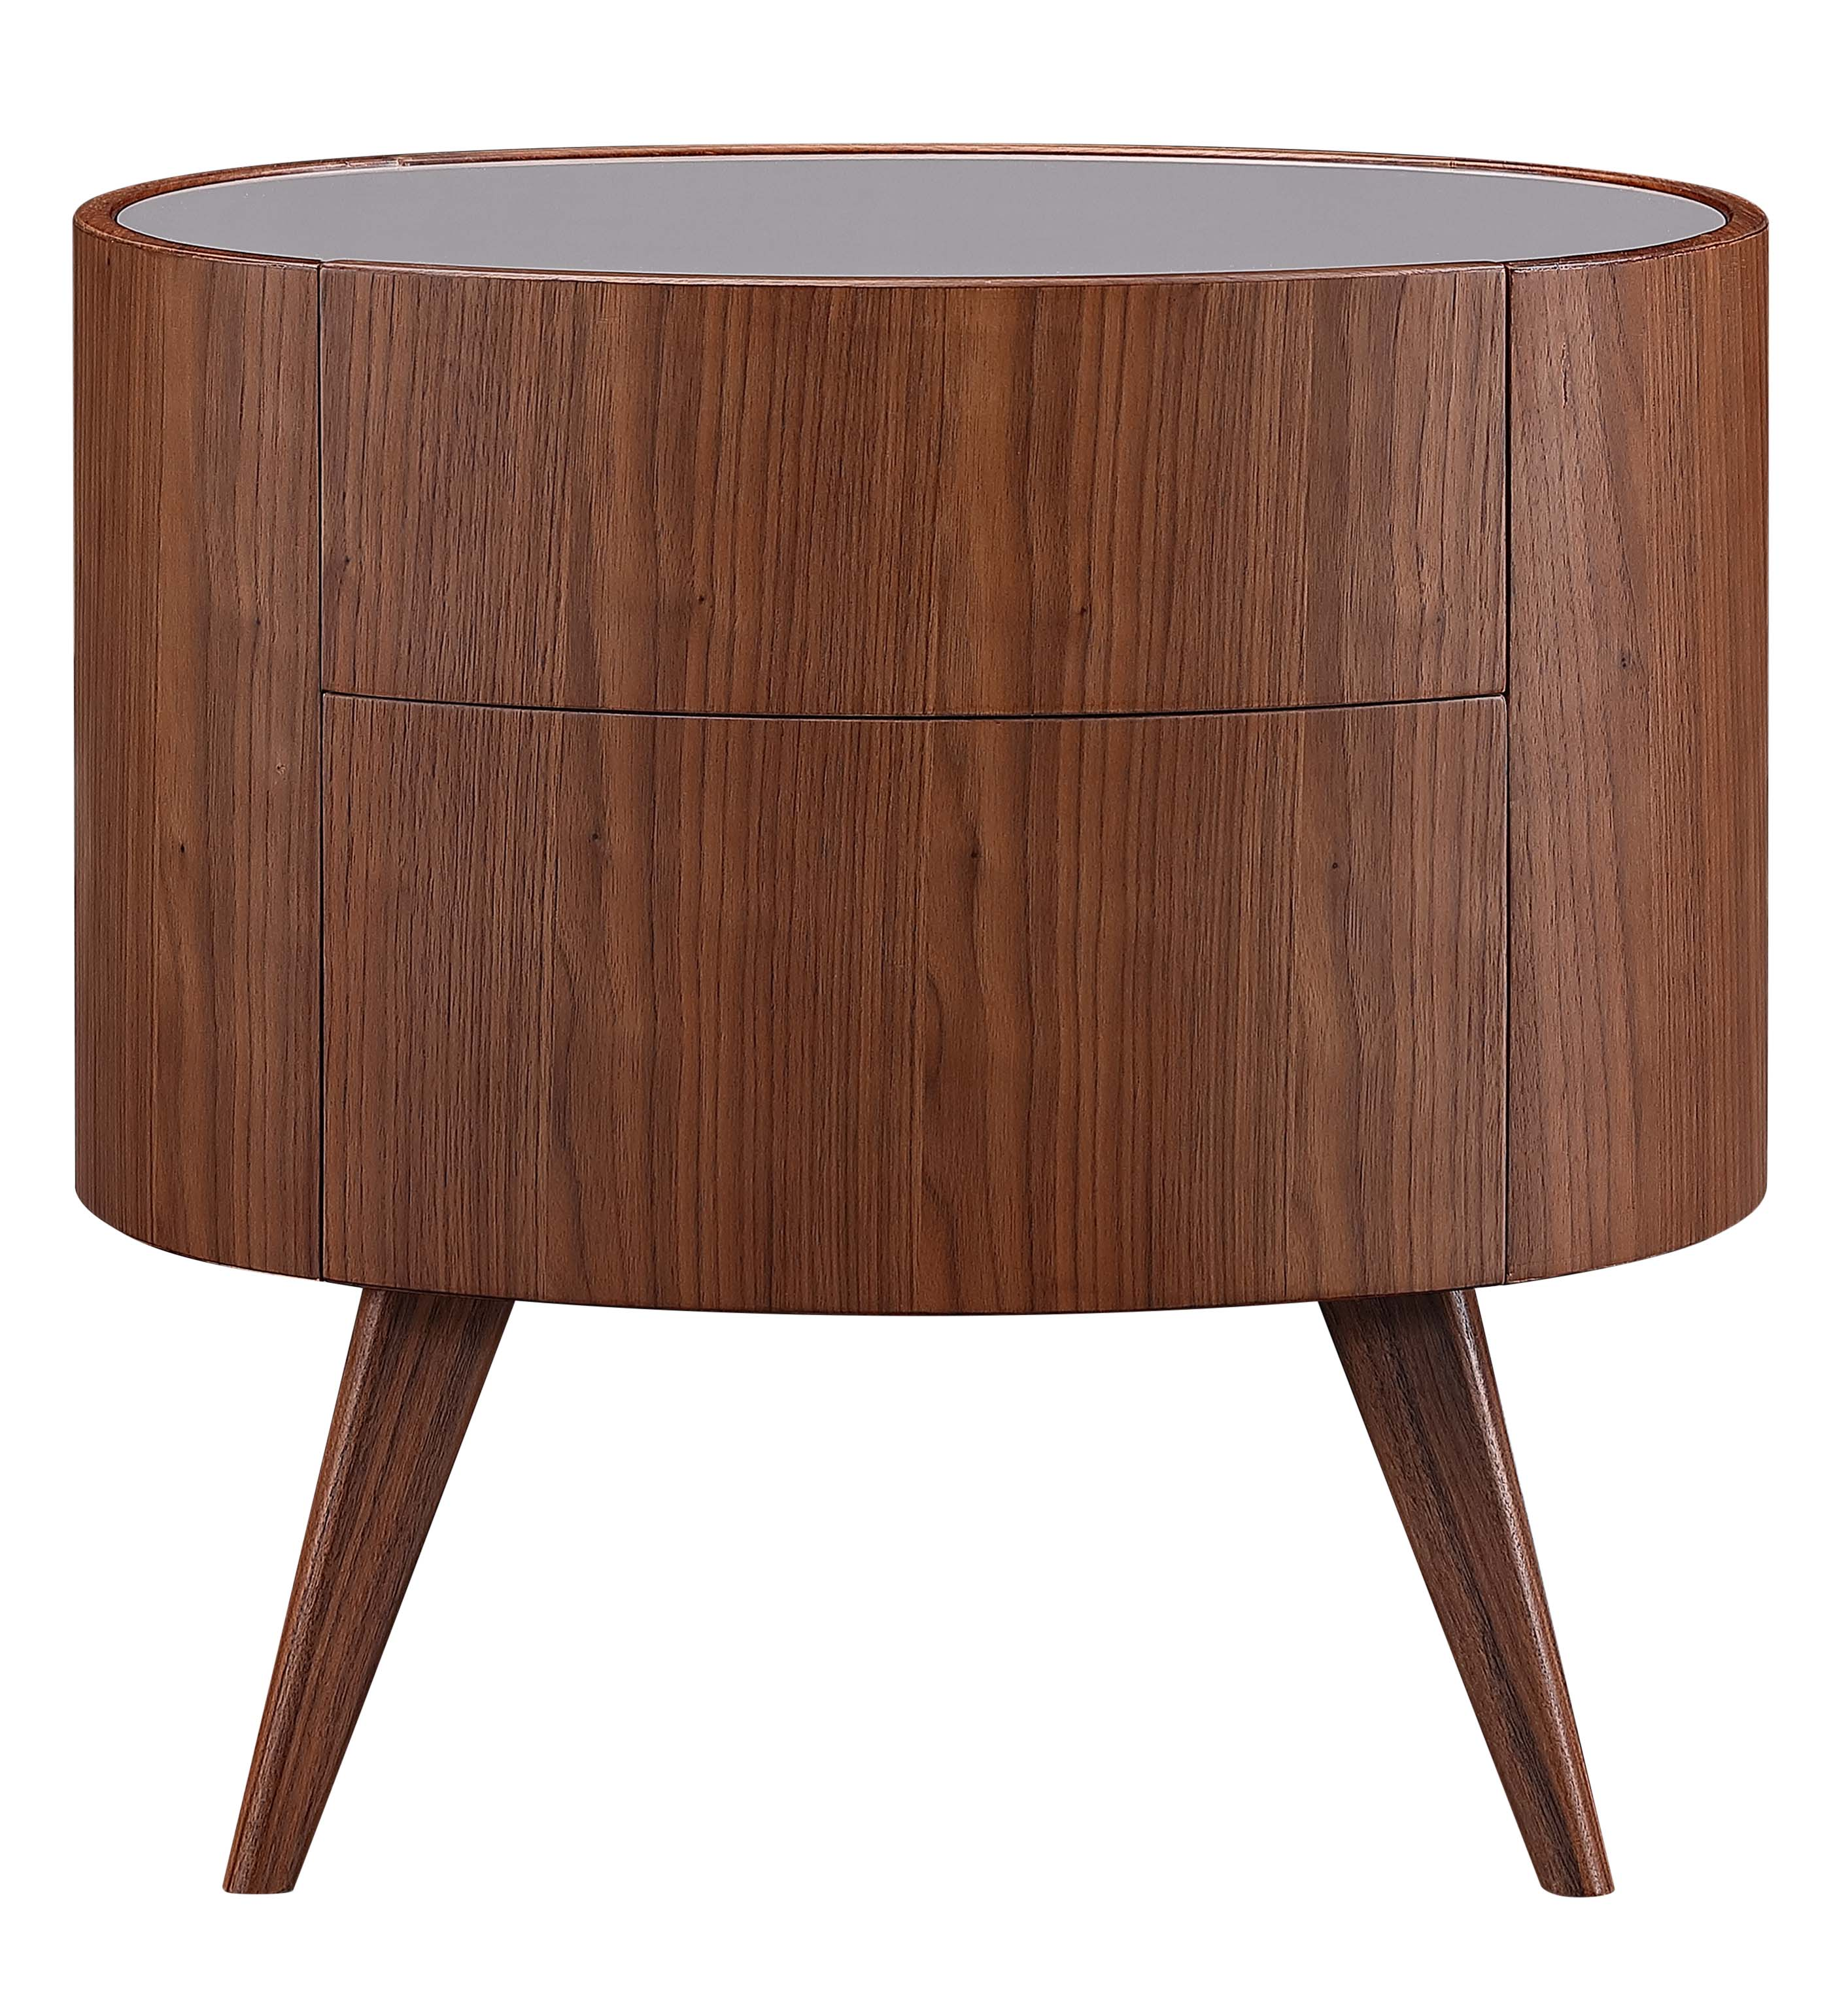 Bedroom Furniture Round Bedside Table For Home Modern Design Glass Top Nightstand Table With A Drawer Buy Round Wood Bedside Table For Bed Room Bedroom Furniture Nightstands With A Drawer Modern Glass Top